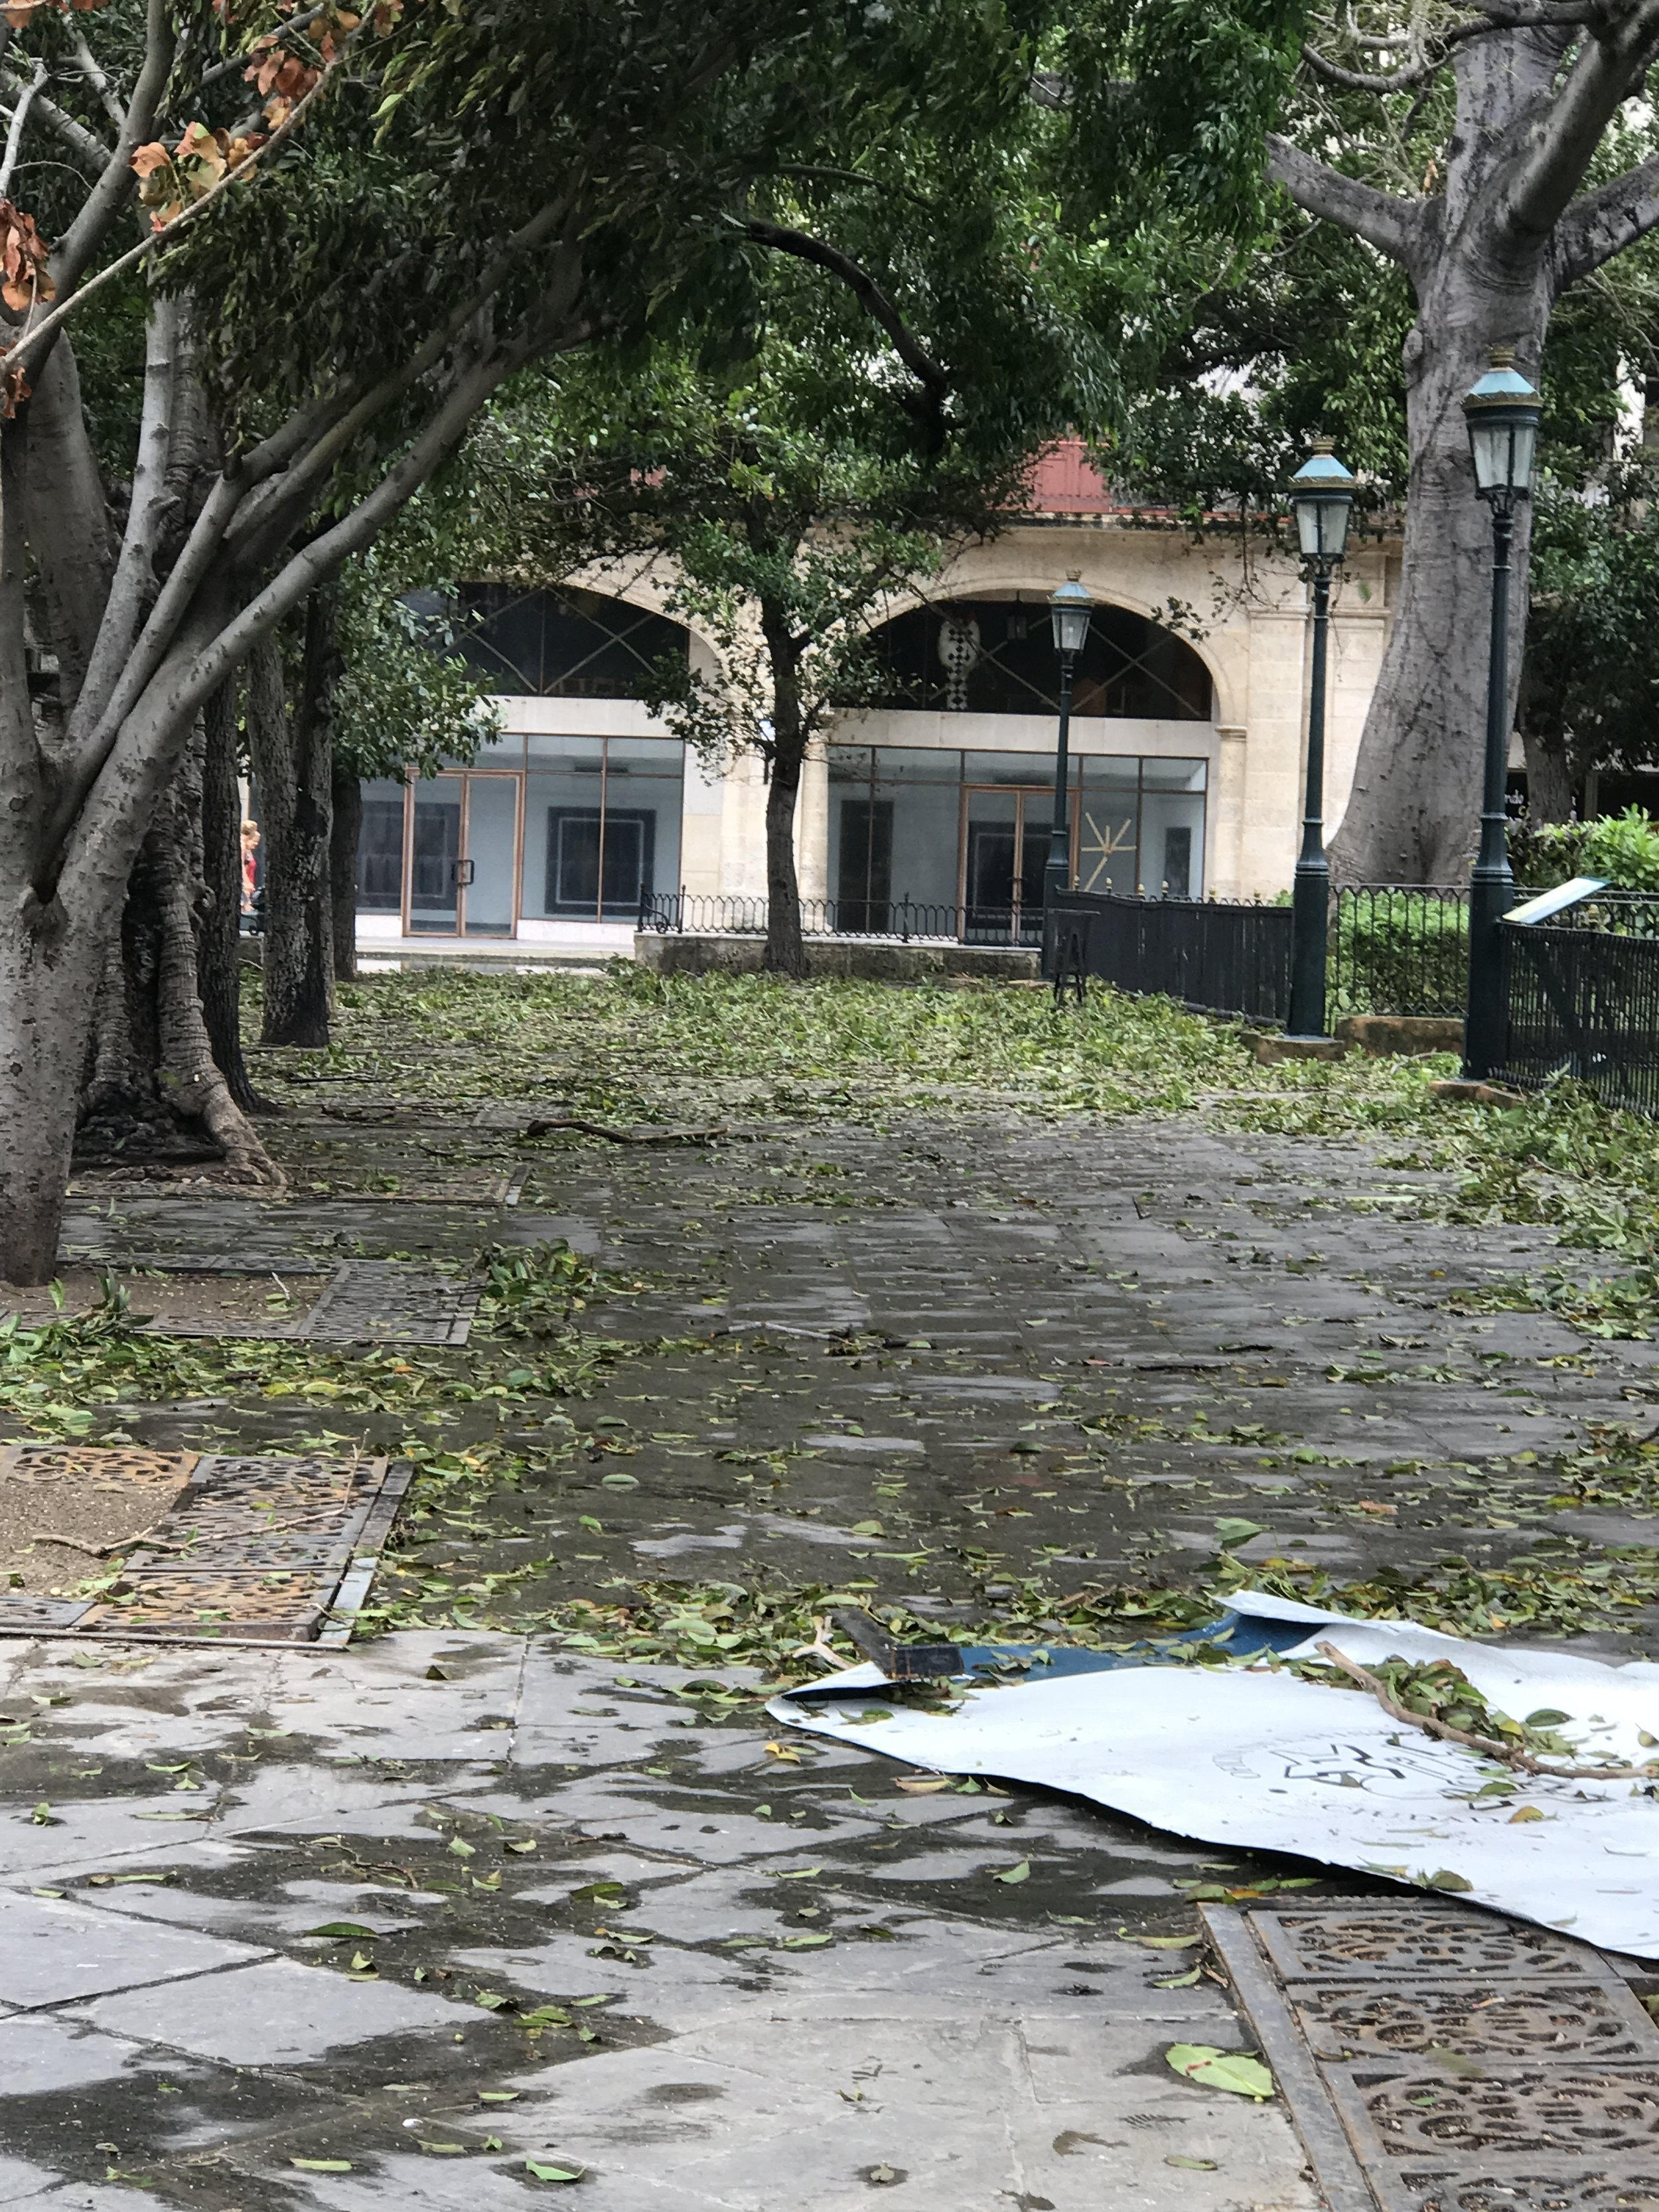 Some small portion of the tree and leaf debris on the ground the morning after.